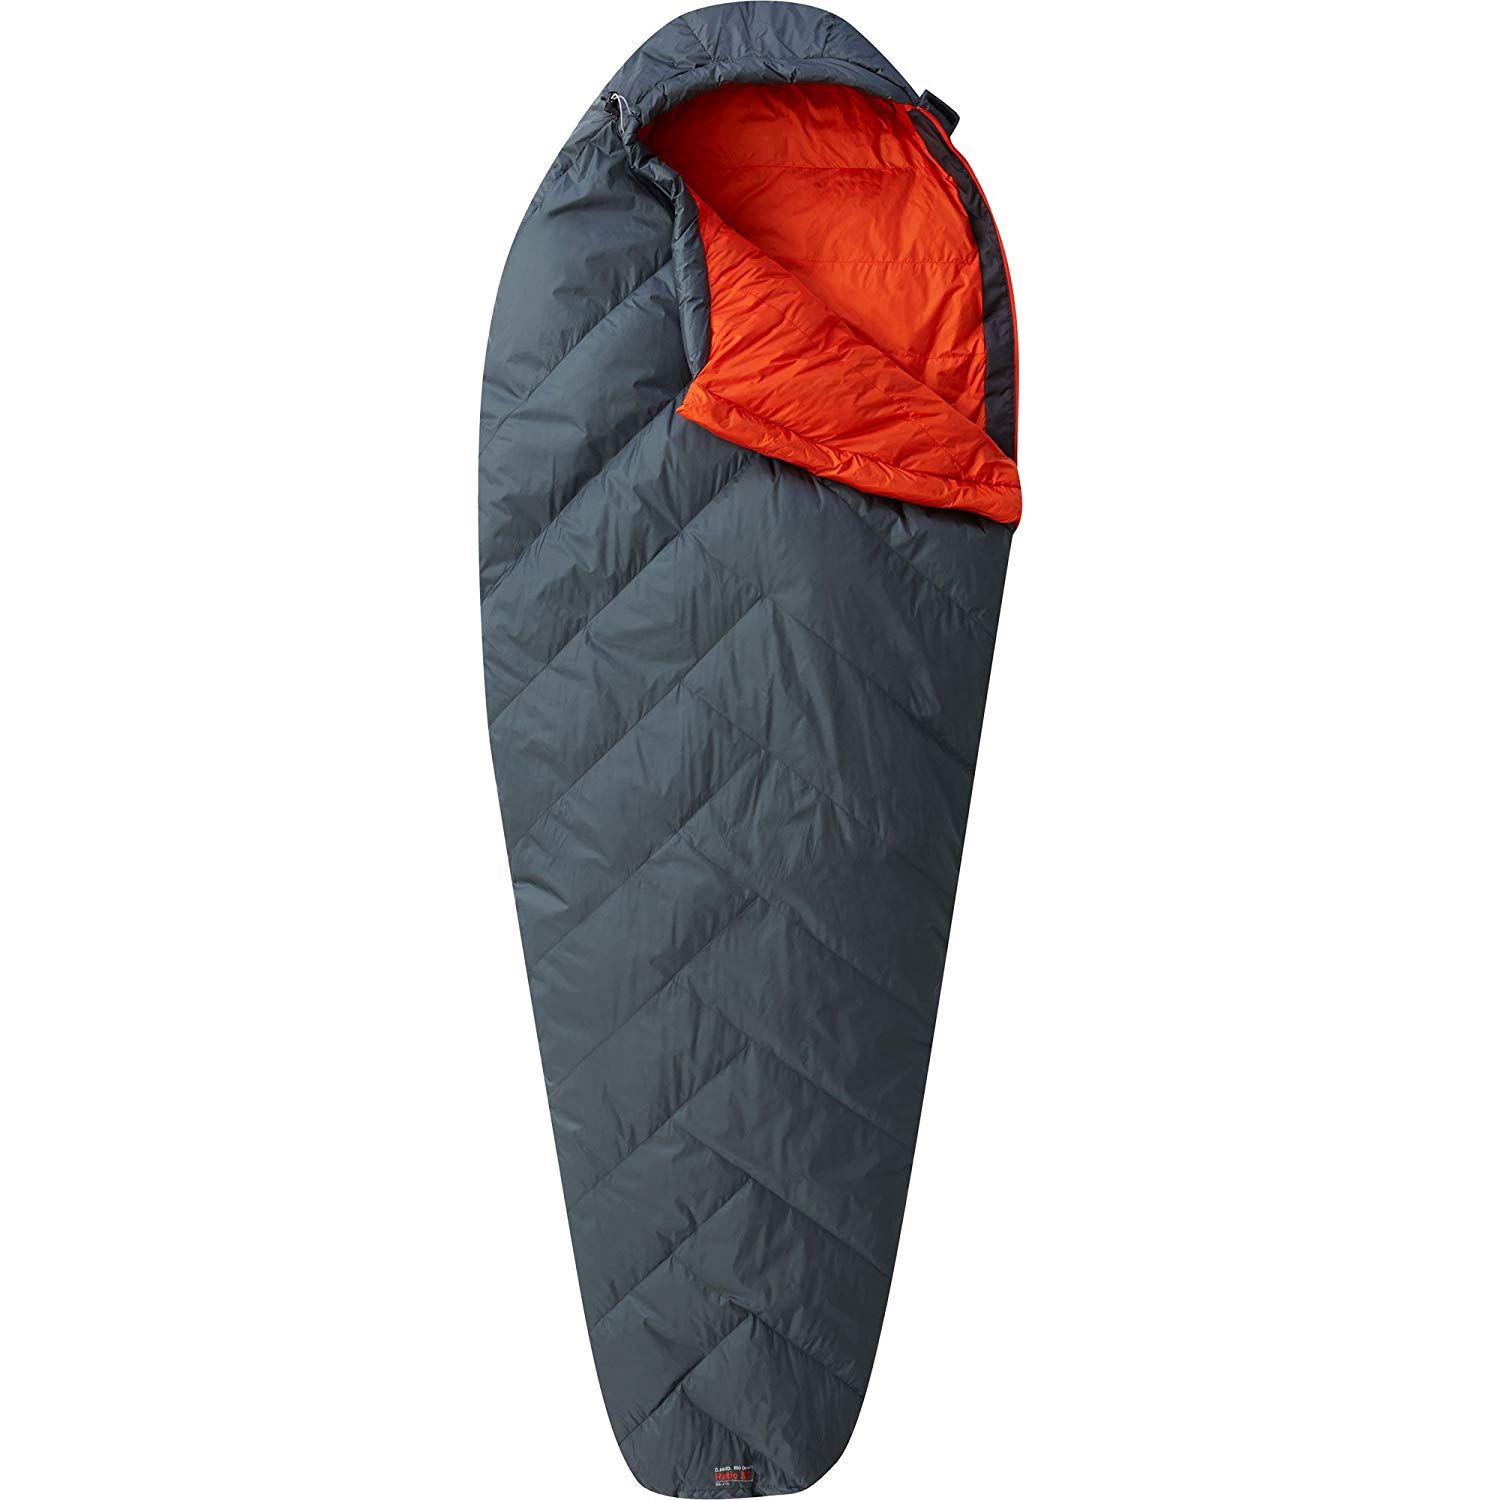 An image of Mountain Hardwear Ratio 32 Mountain Hardwear Sleeping Bag